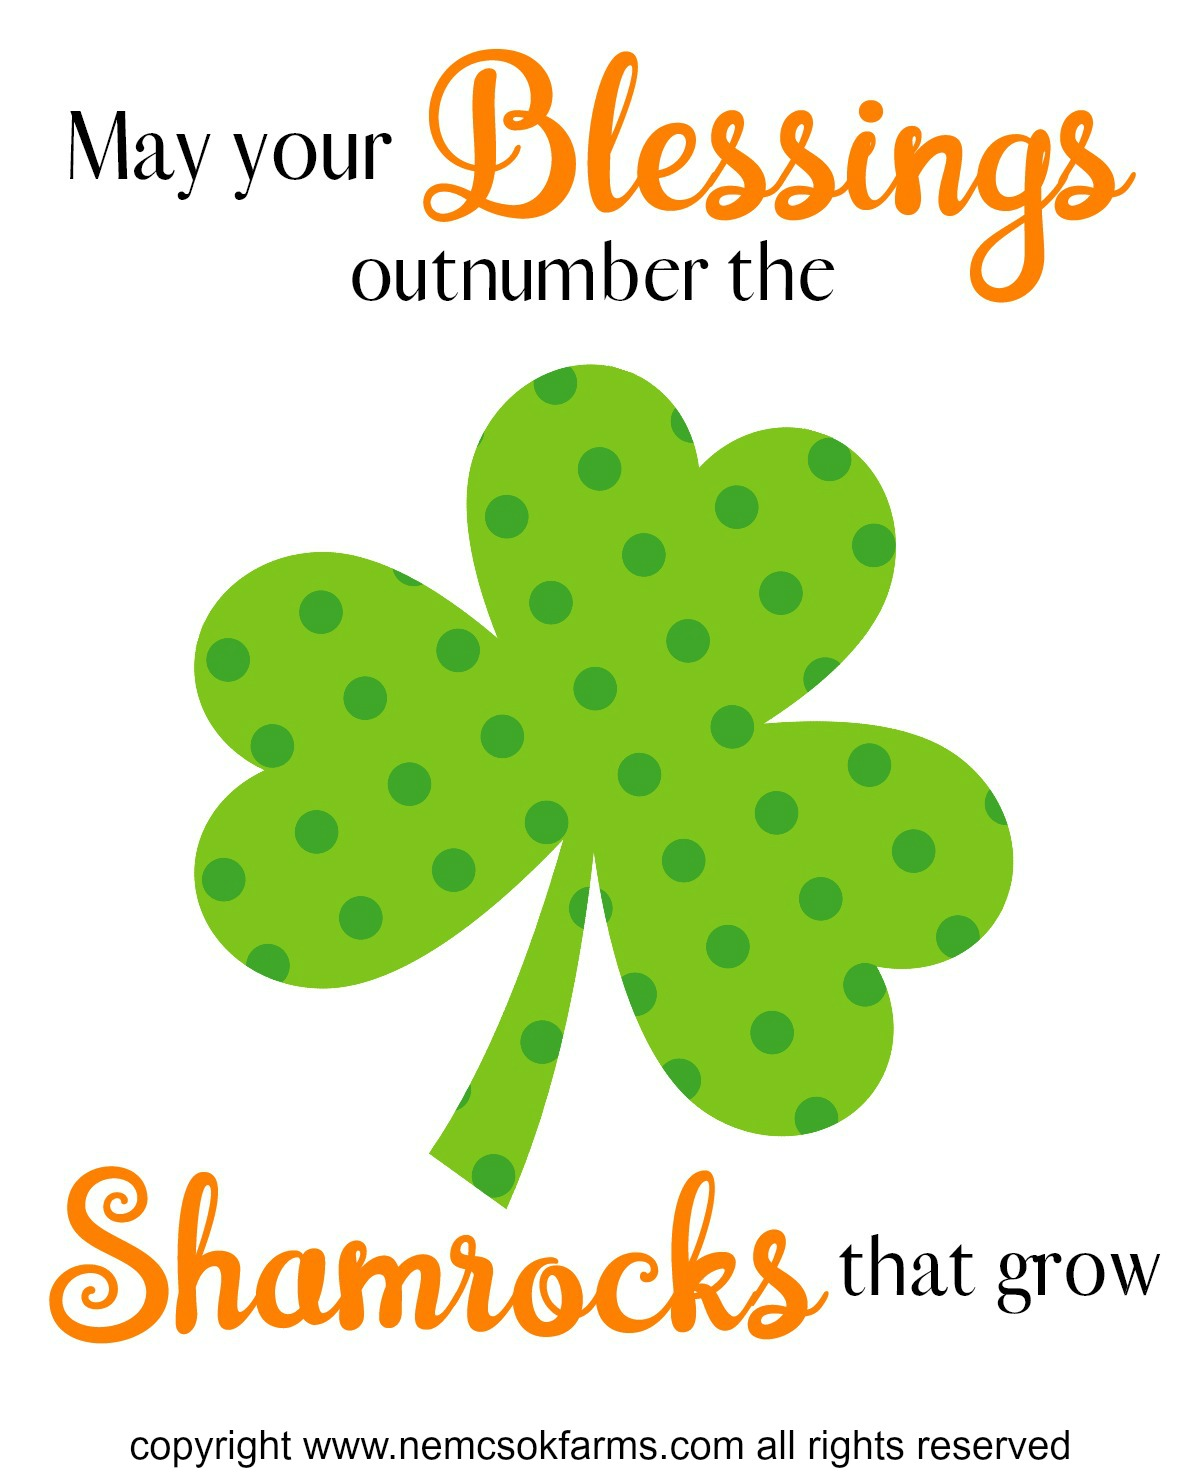 Blessings and Shamrocks copyright